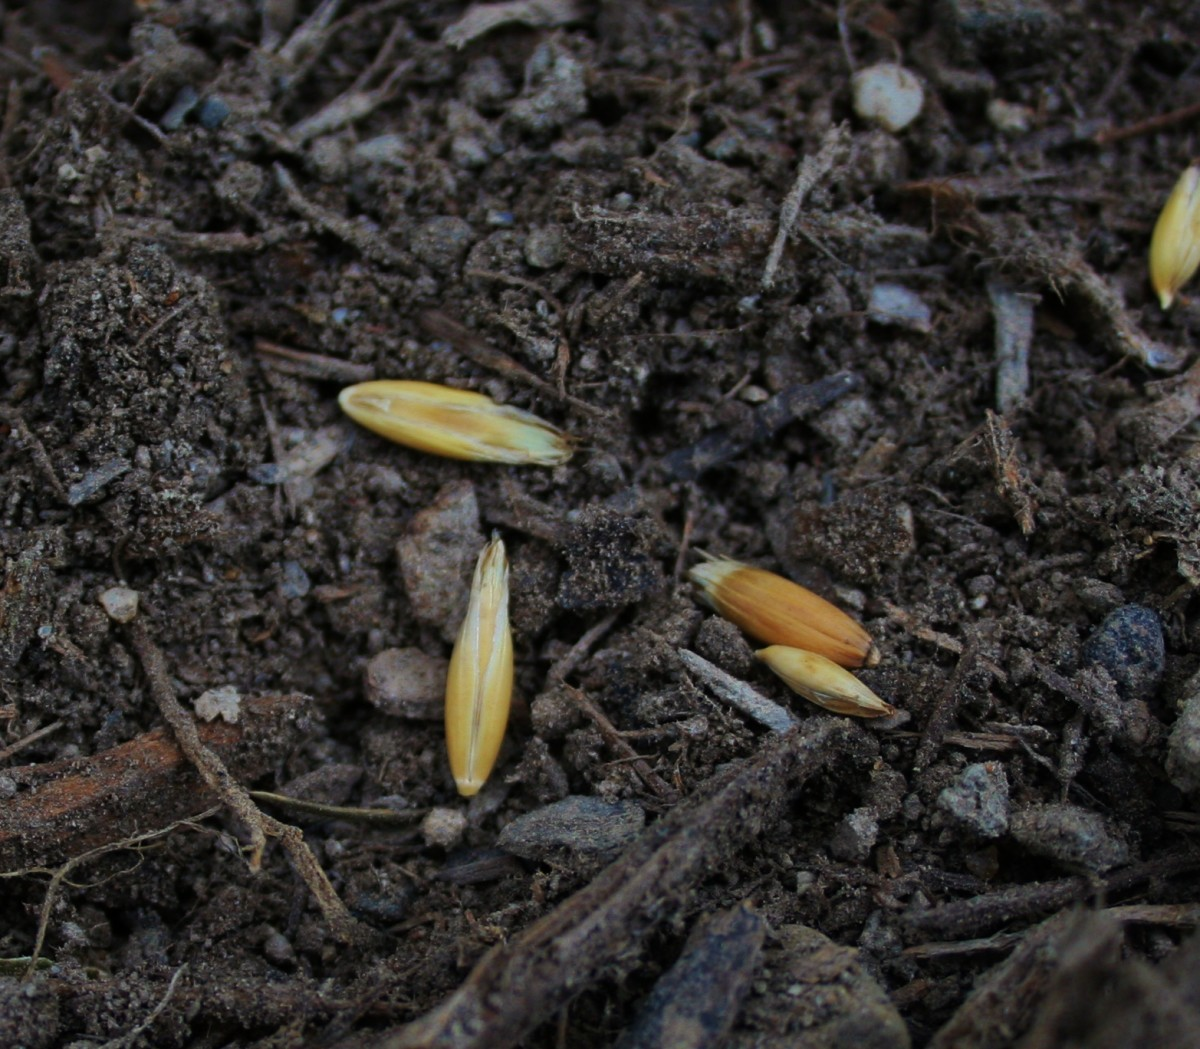 Oats & other cover crops are called green manure.